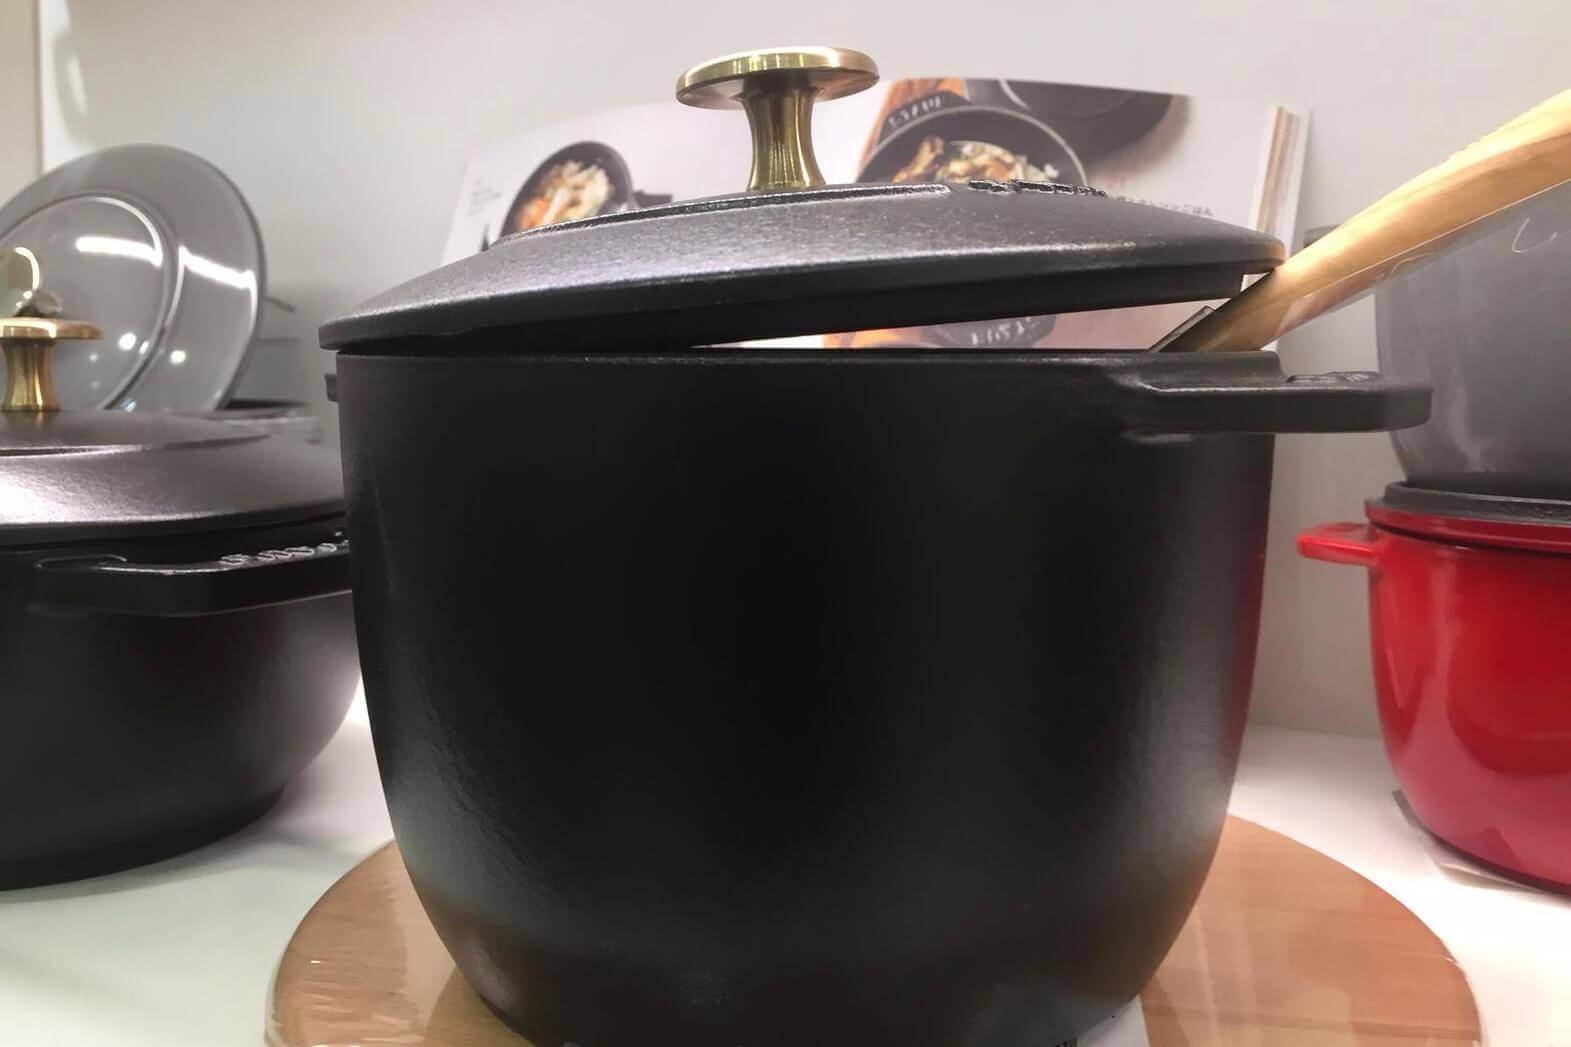 Staub cast iron make spectacular cookware. This pot is made for the Japanese market called a rice cooker.